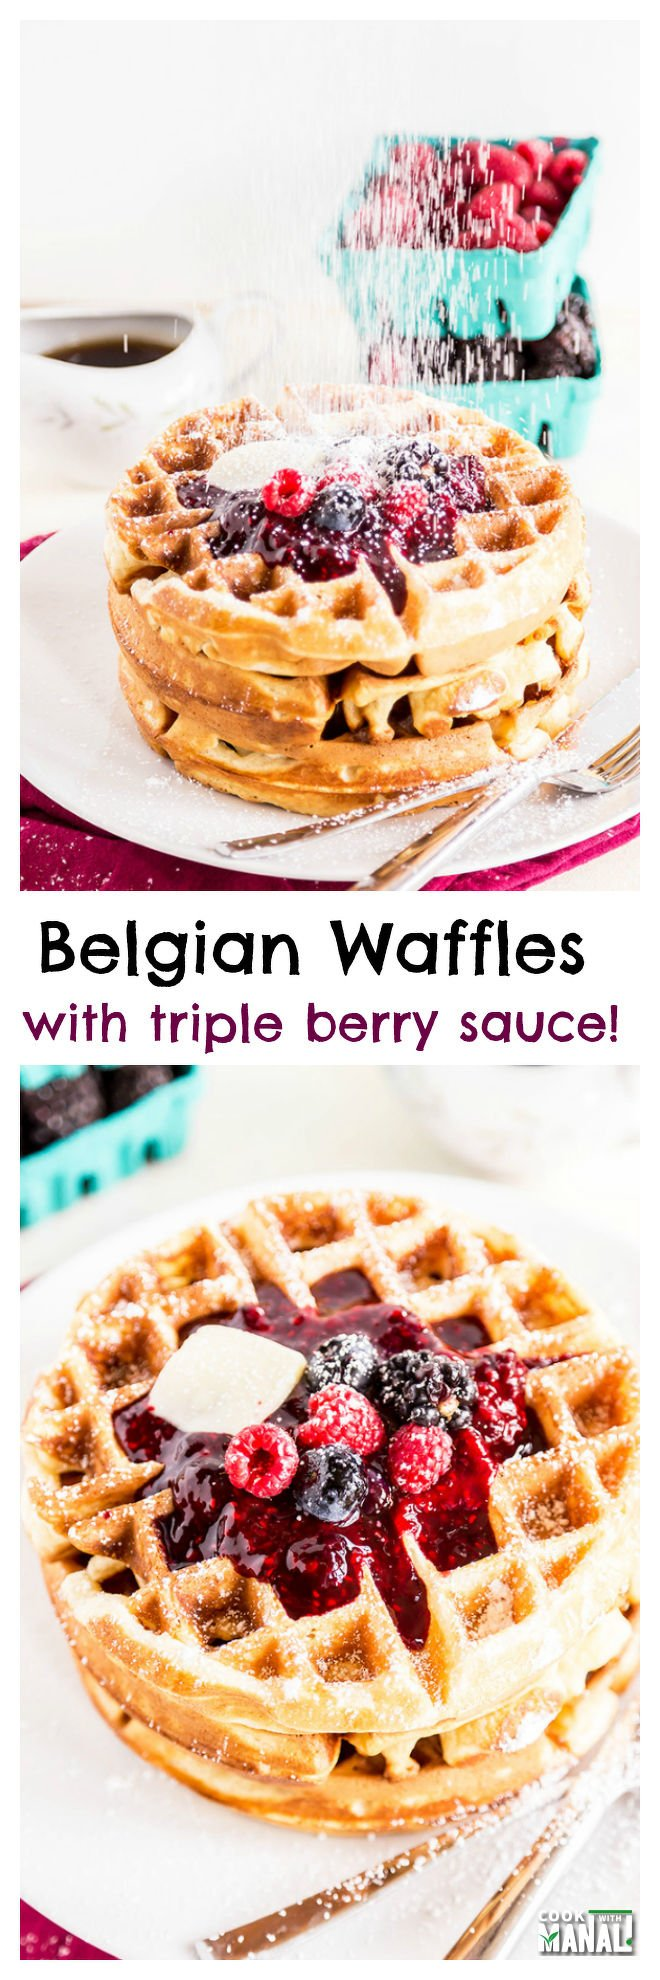 Belgian Waffles With Triple Berry Sauce-collage